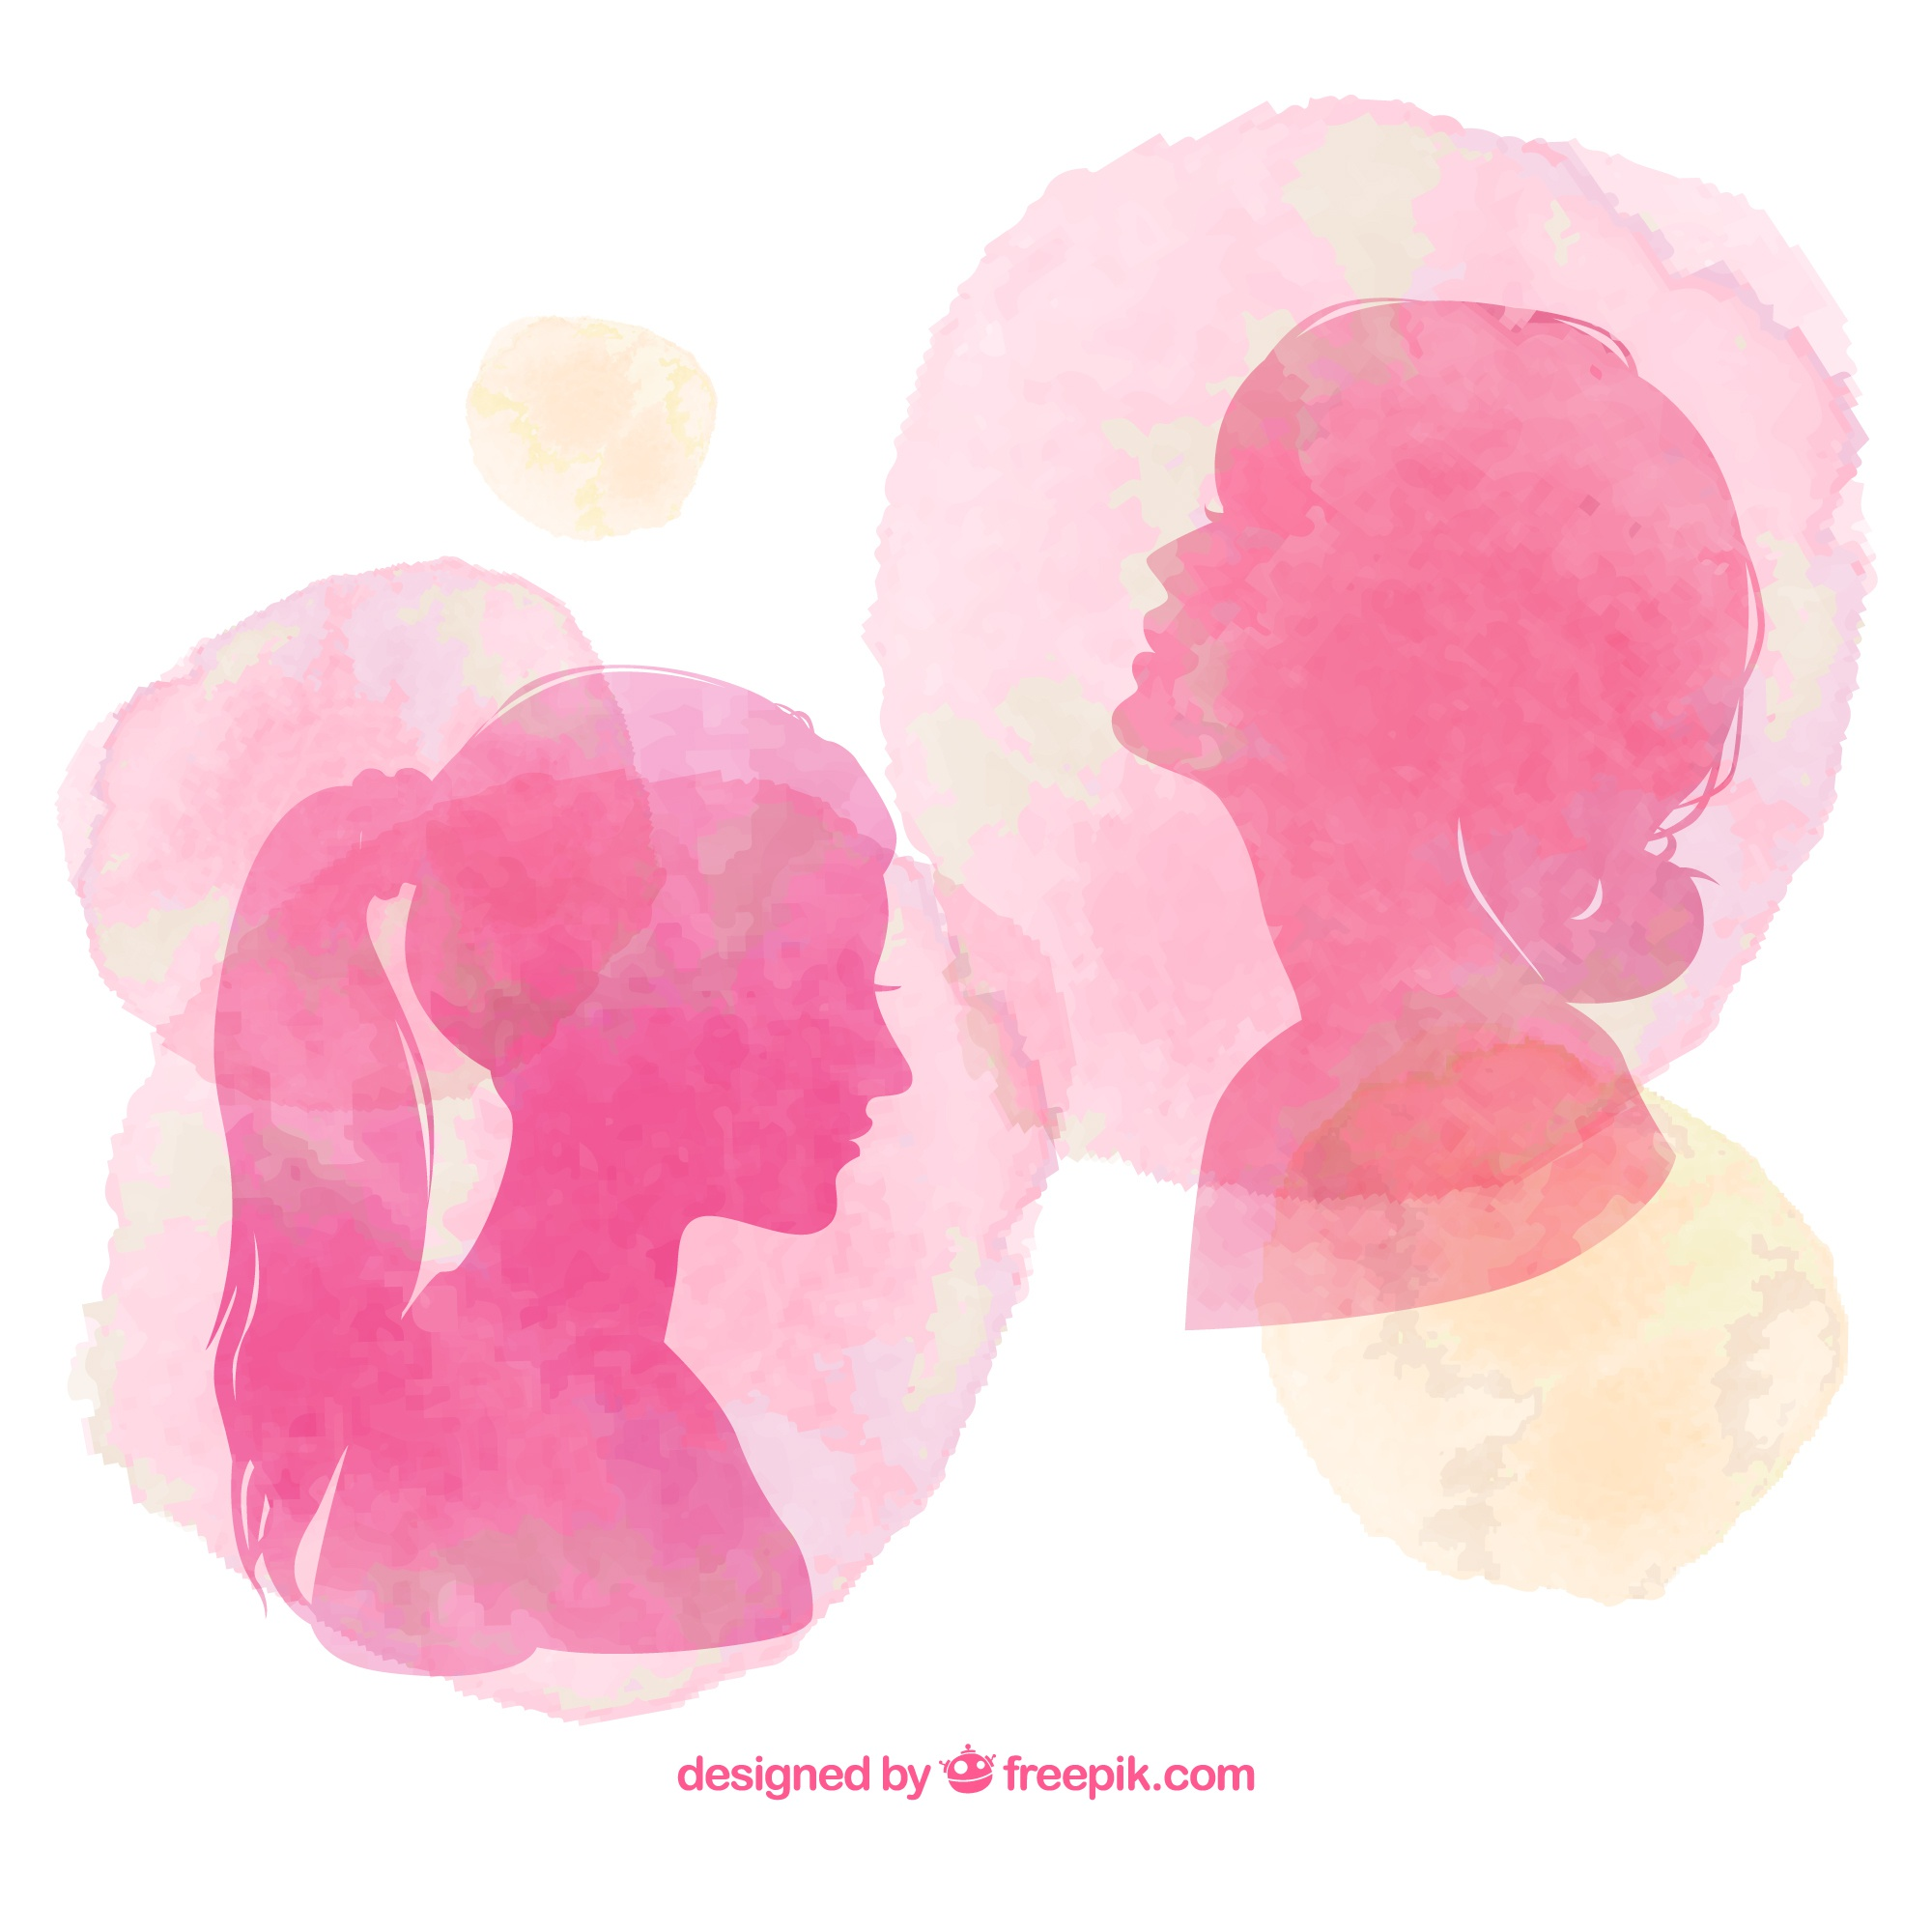 Hand painted women silhouettes